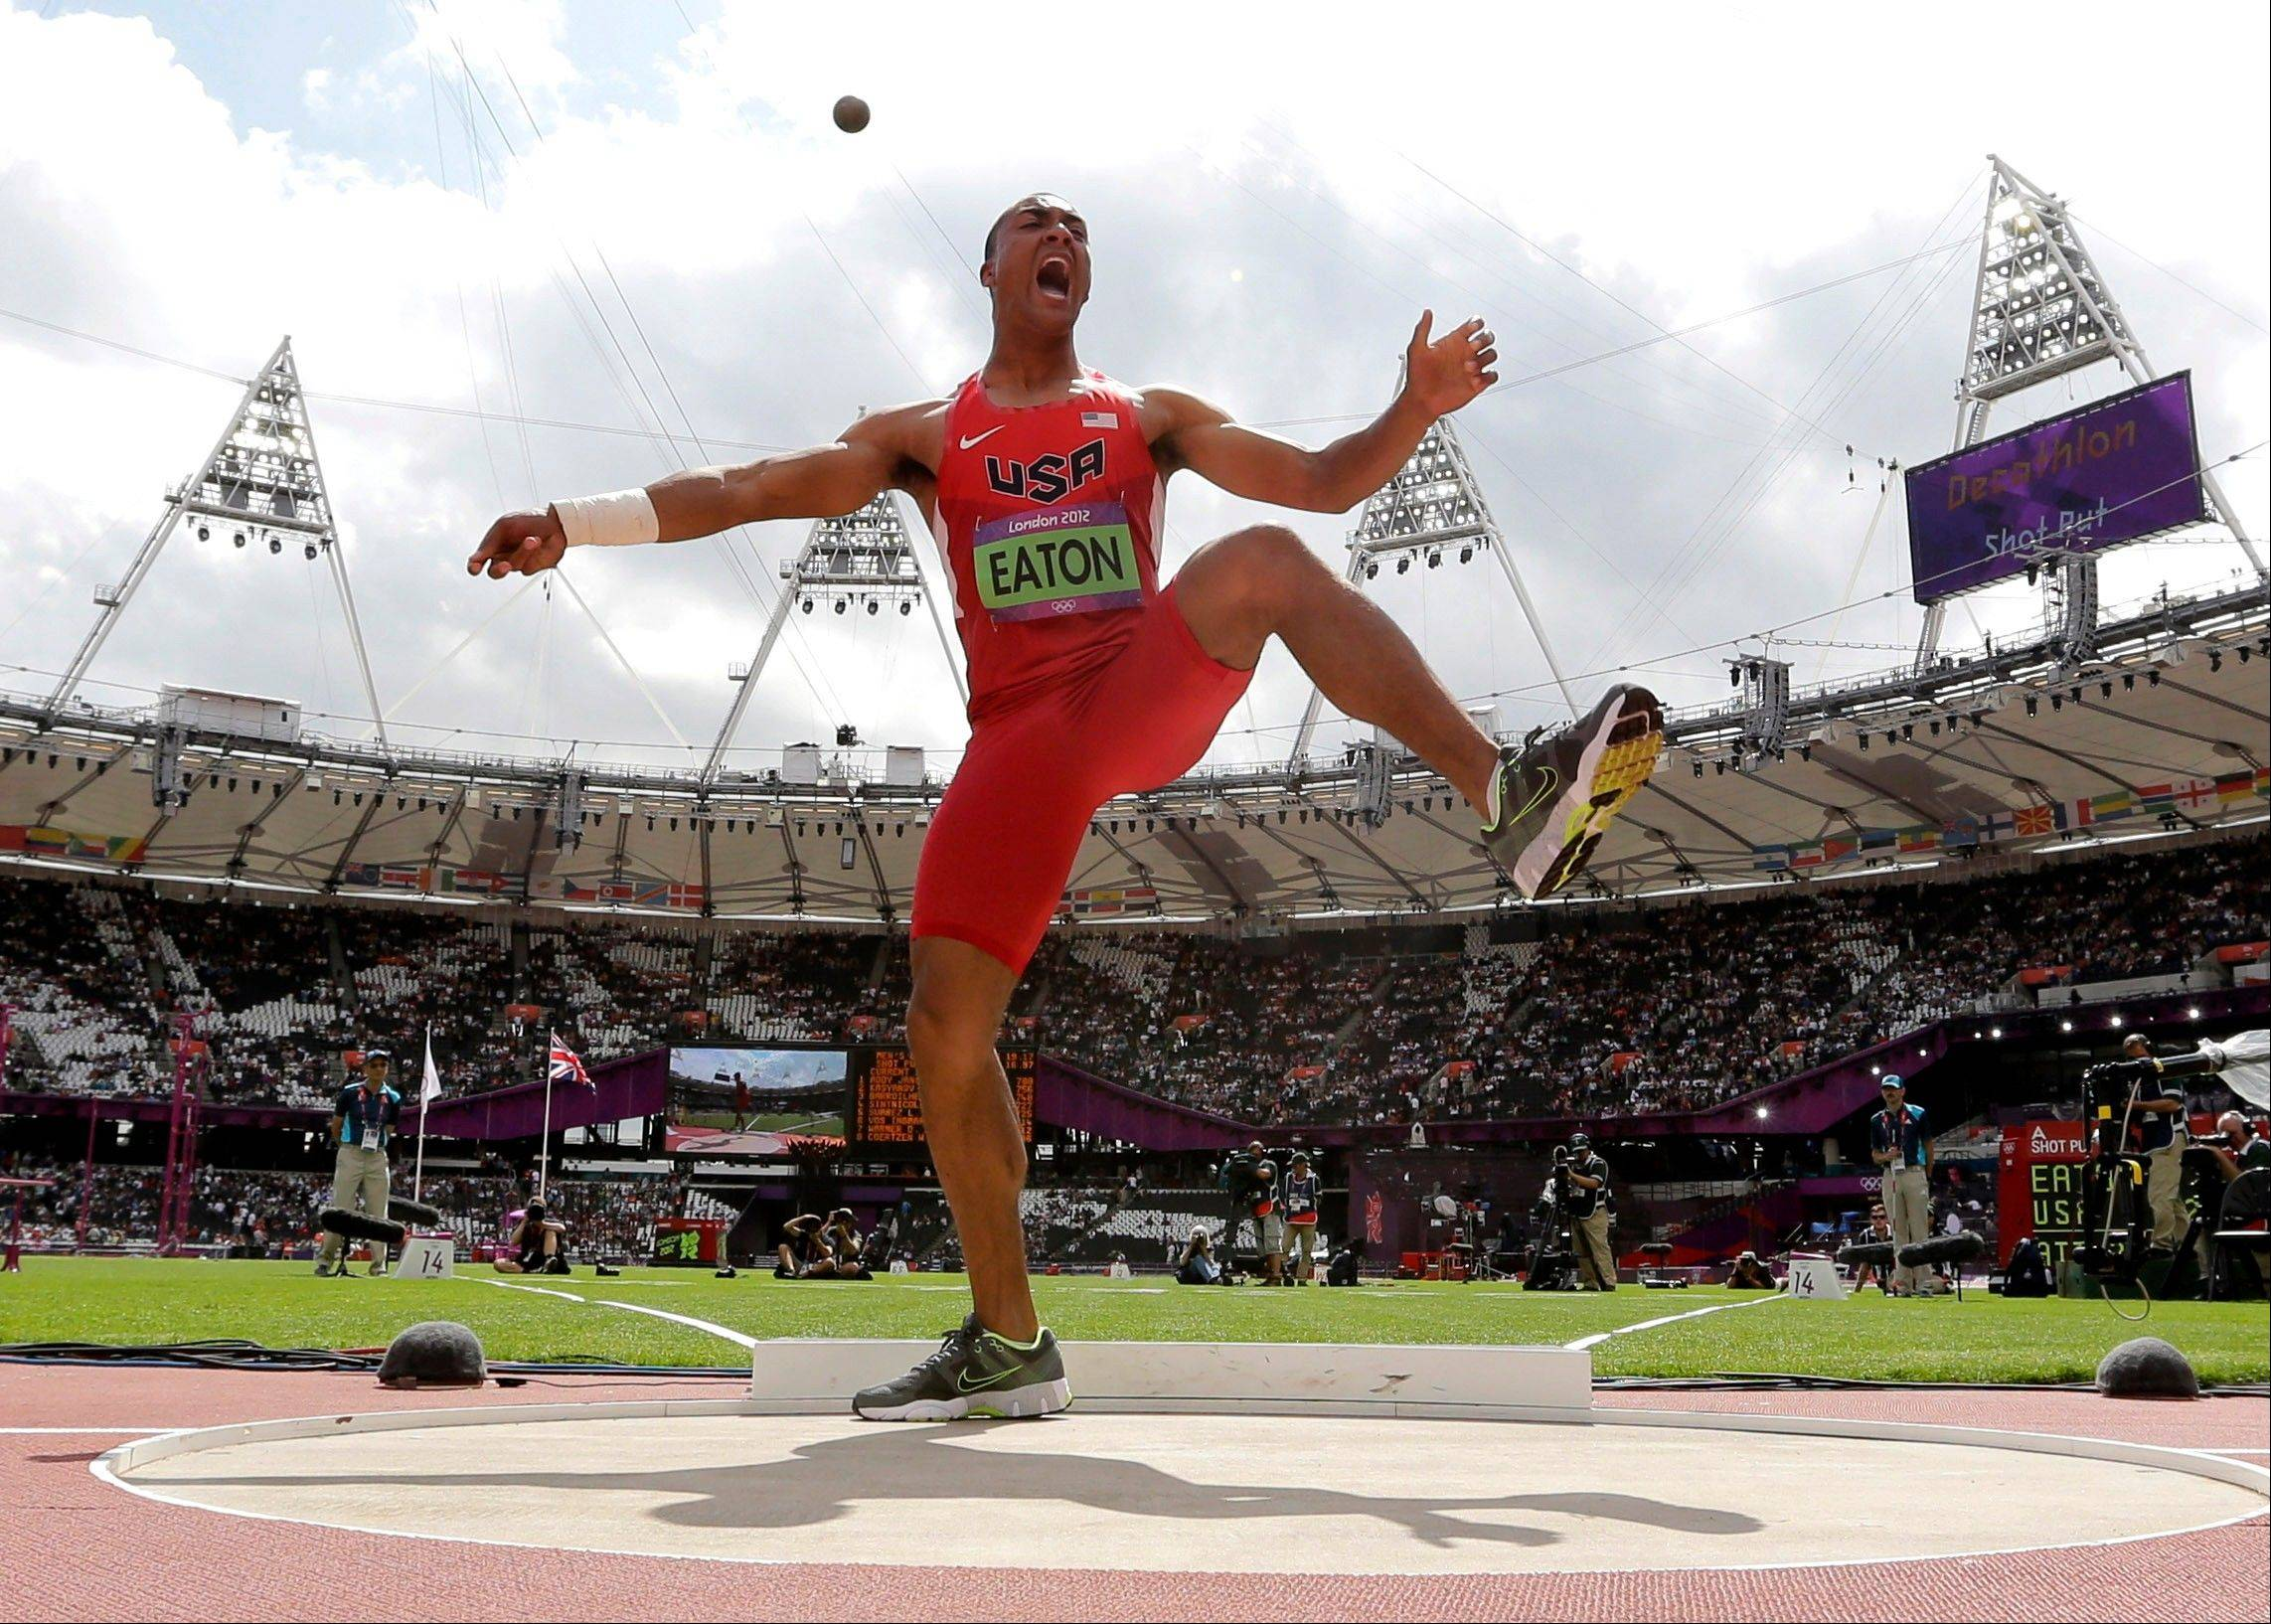 United States' Ashton Eaton reacts after his throw in the shot put in the decathlon during the athletics in the Olympic Stadium at the 2012 Summer Olympics, London, Wednesday, Aug. 8, 2012.